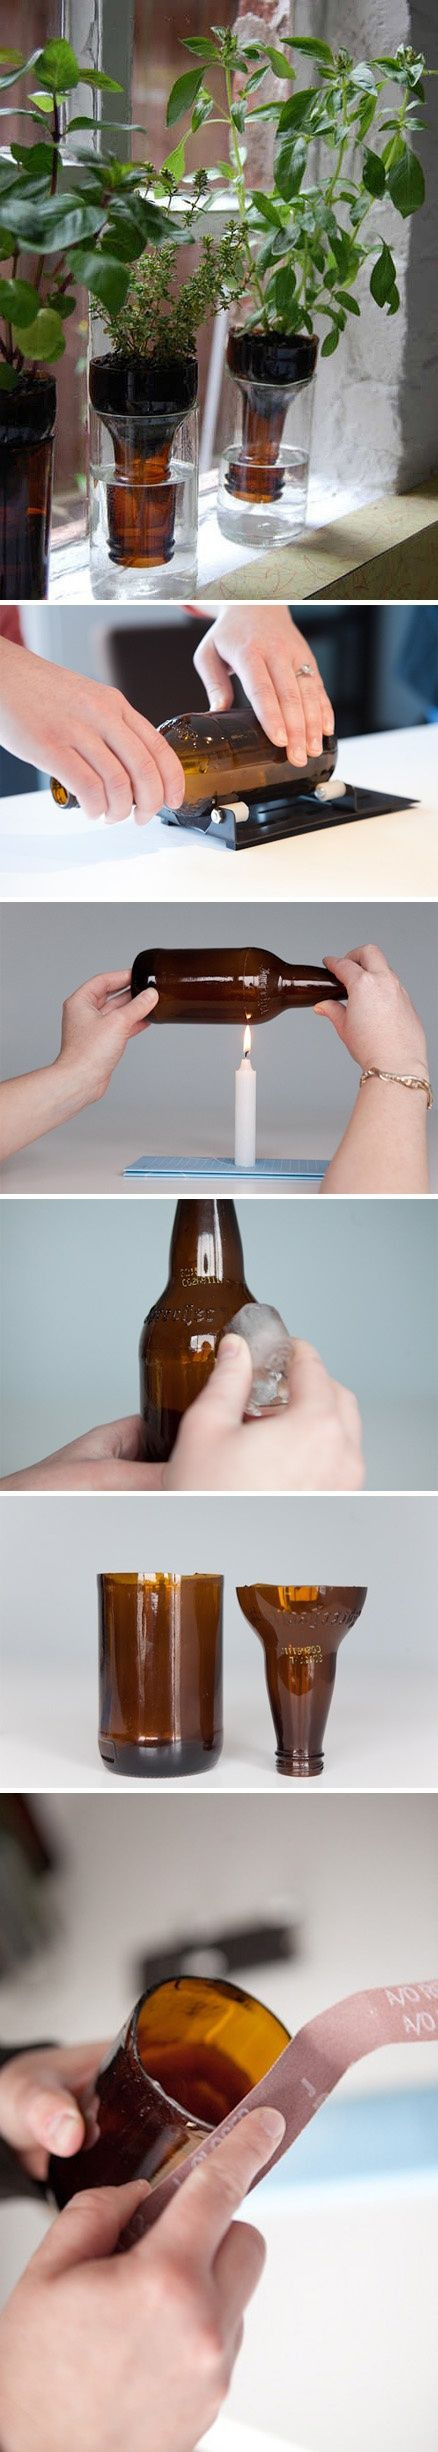 Wedding Ideas: diy-beer-bottle-vase